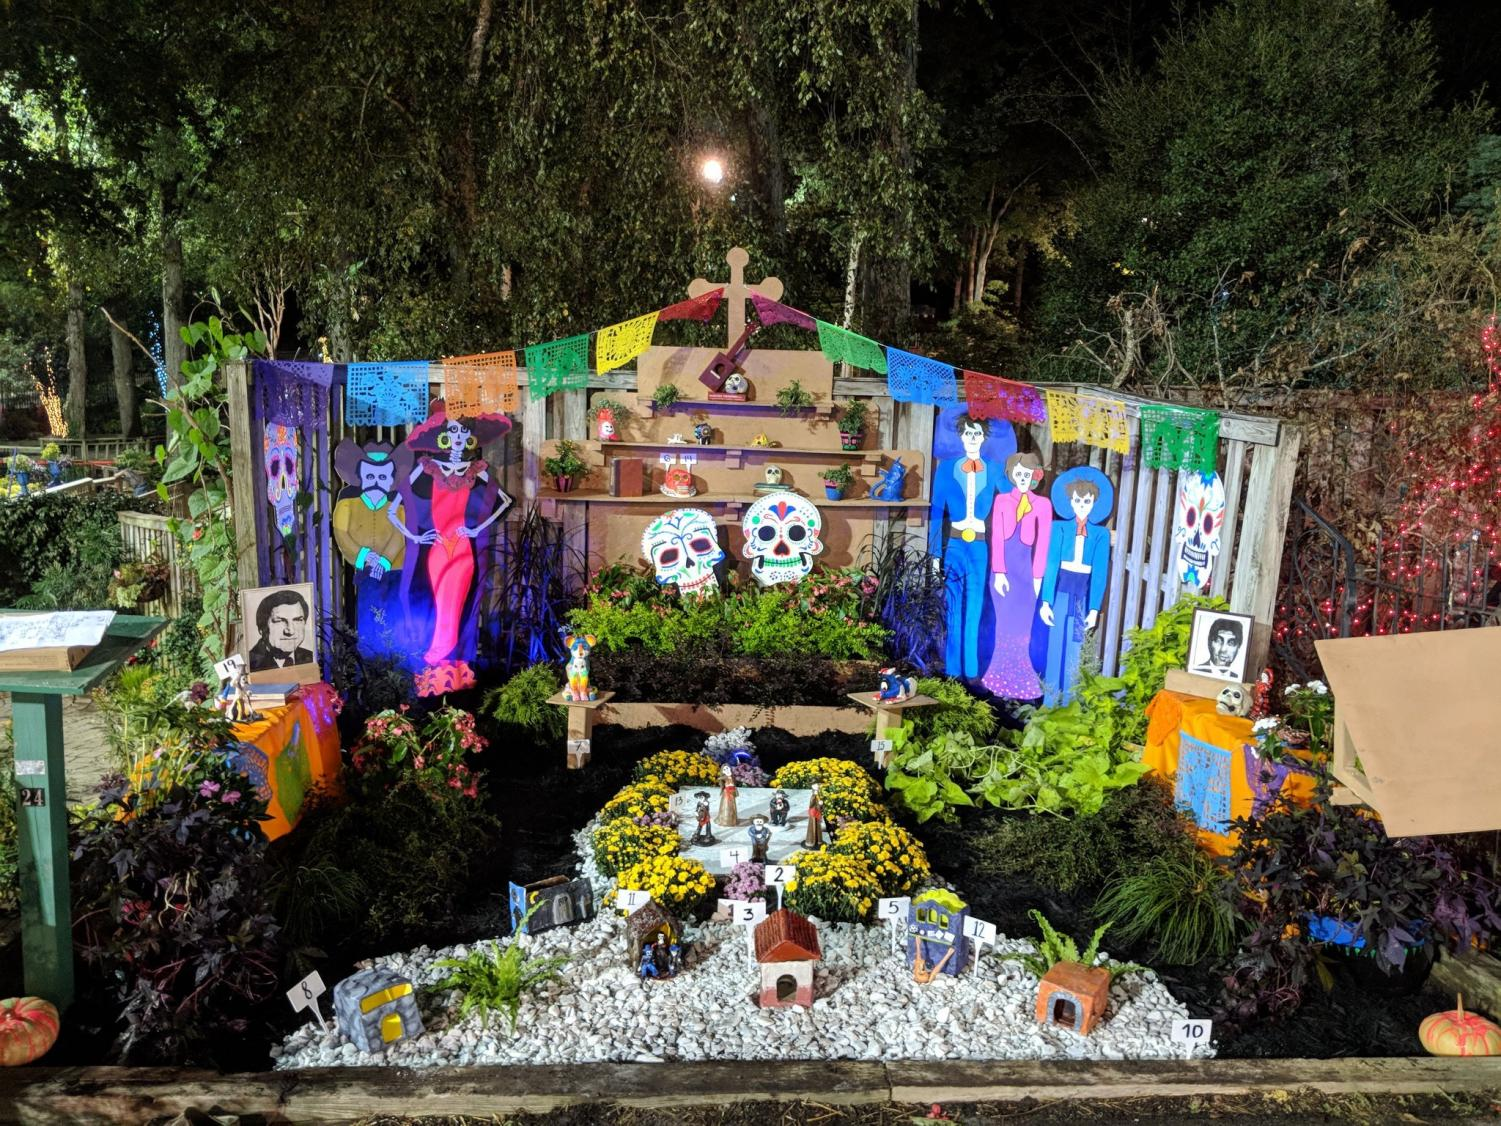 Representing Millbrook's creativity, this garden made by FFA, along with students in Art and Creative Writing, won first prize at the North Carolina State Fair. This was one of the many ways Millbrook students were represented at the fair.